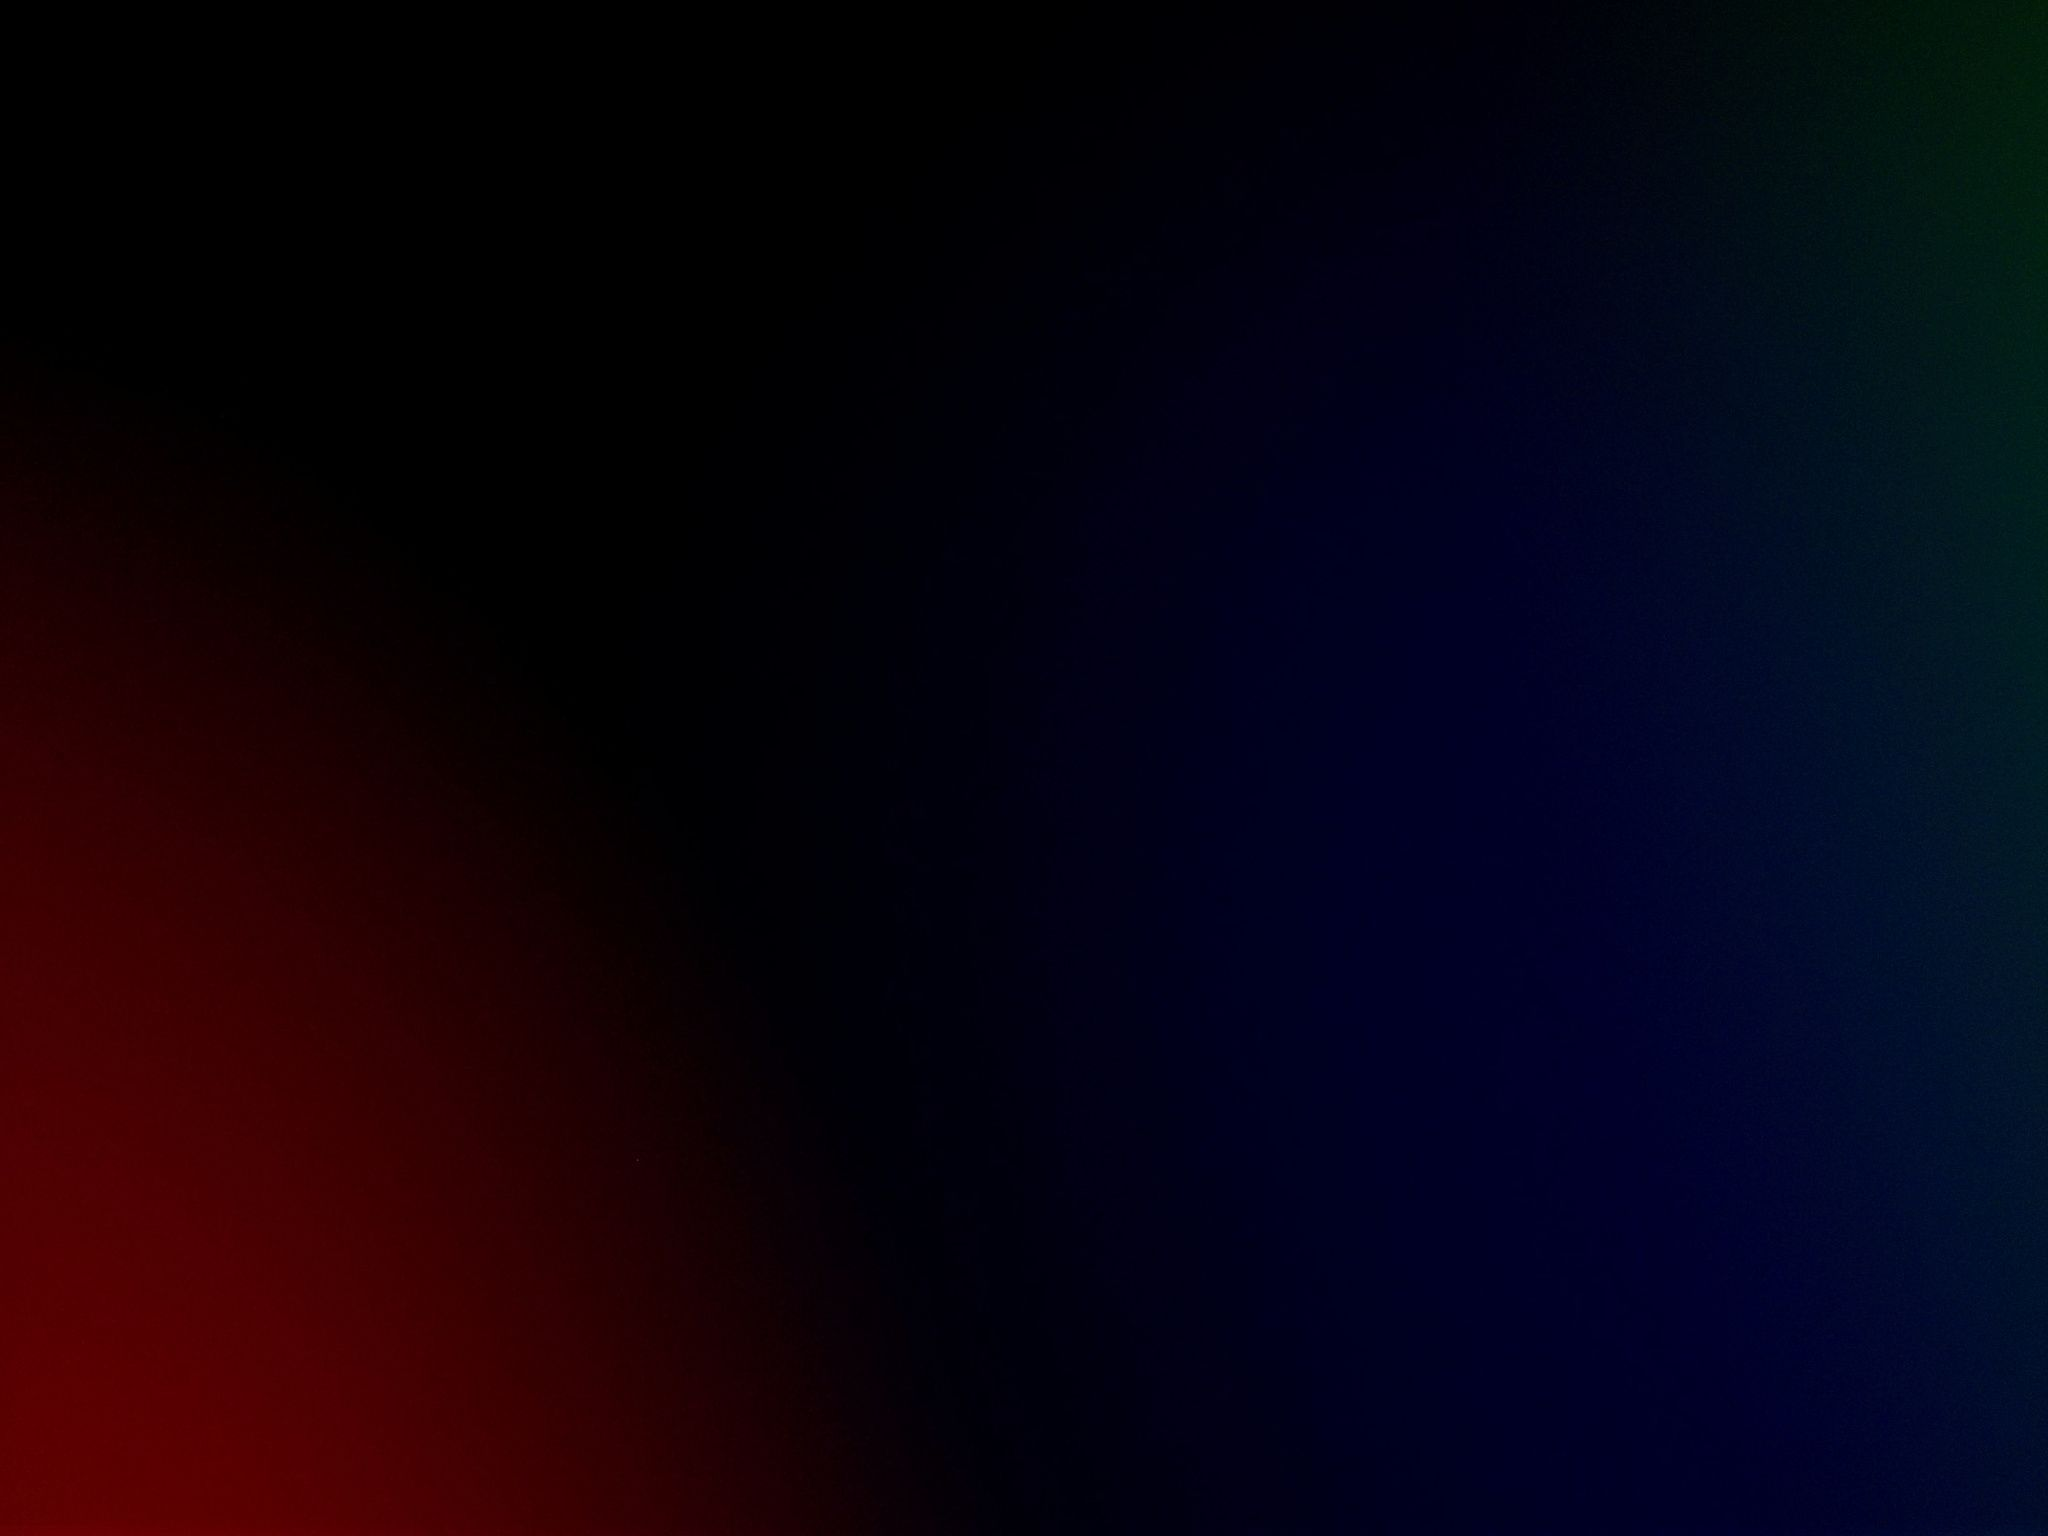 Color gradient background suggesting spirituality